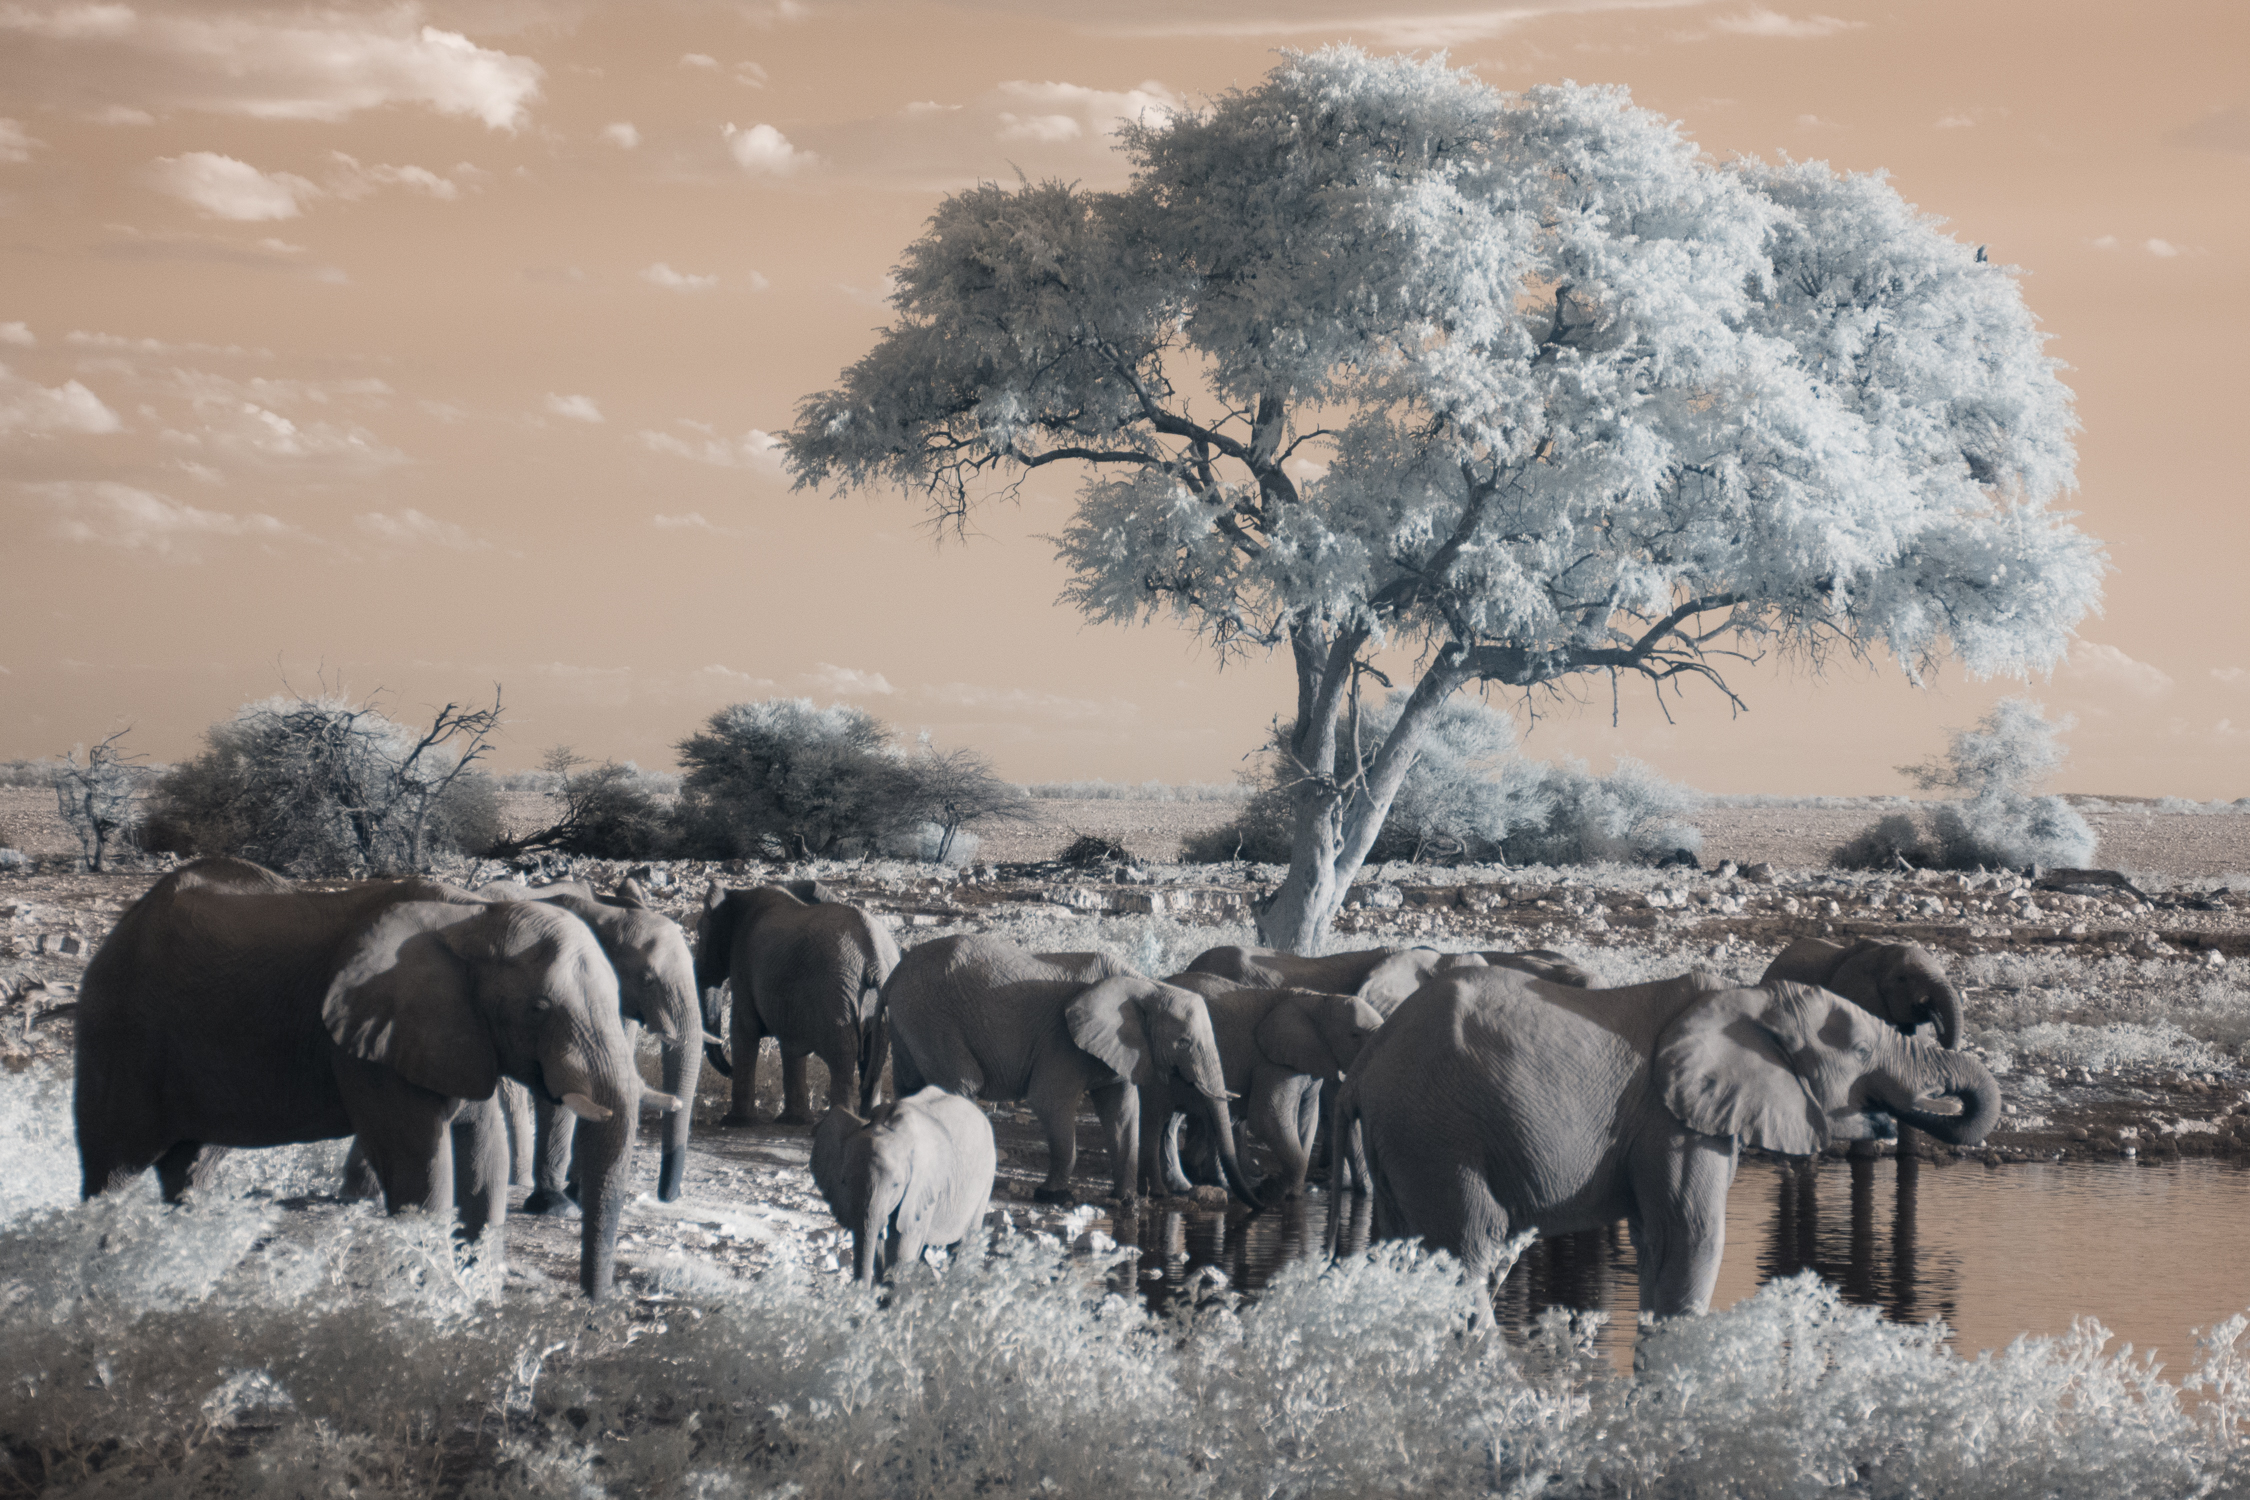 Elephants at Etosha National Park.